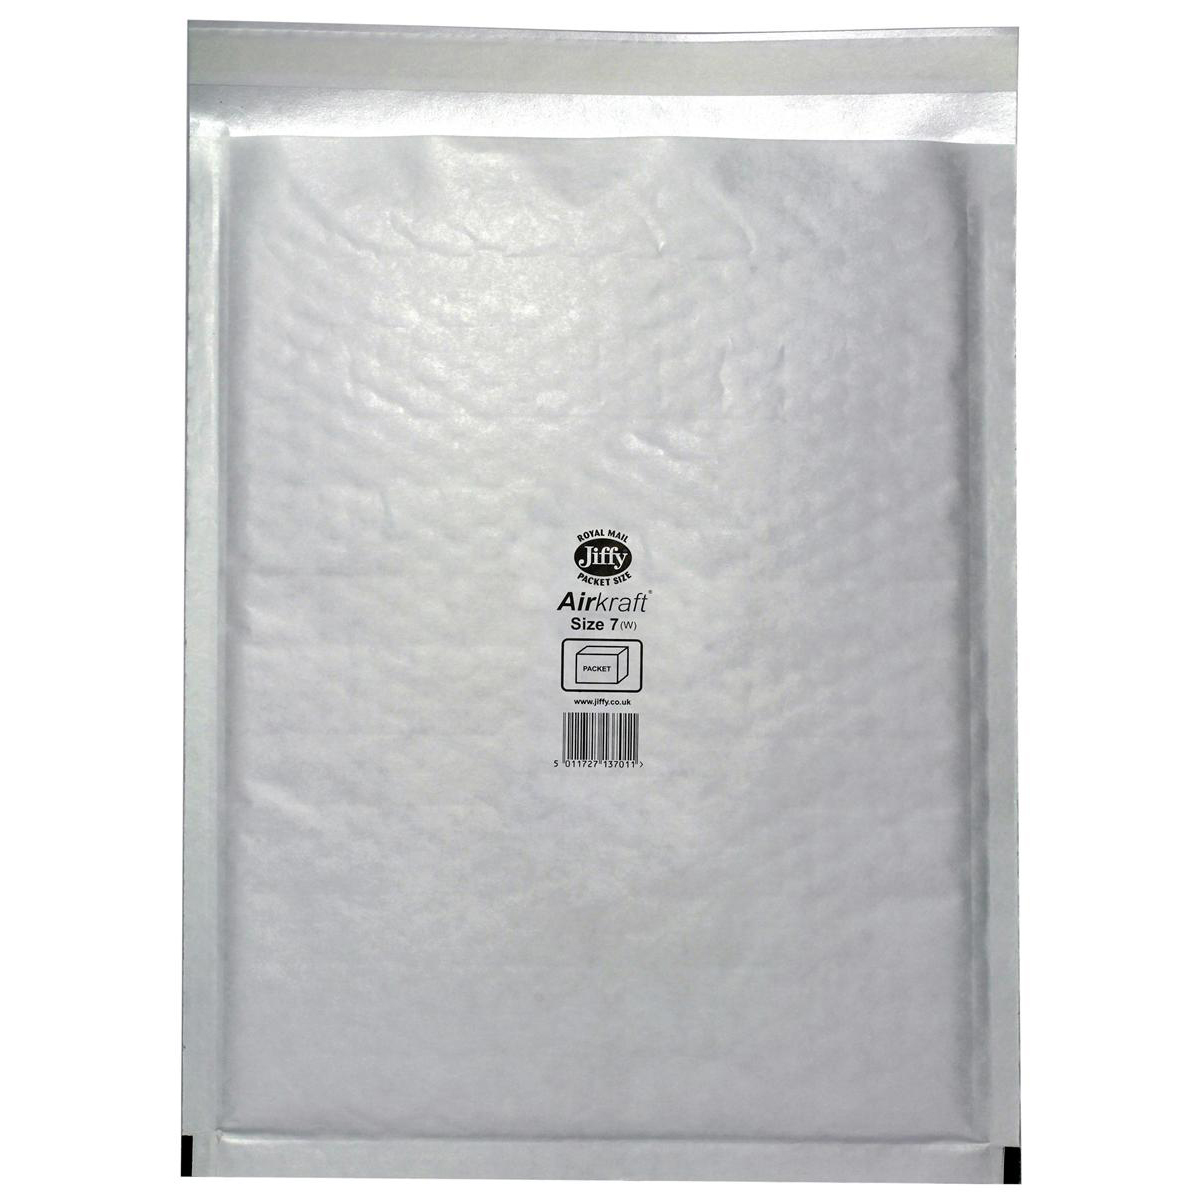 Padded Bags & Envelopes Jiffy Airkraft Bag Bubble-lined Peel and Seal Size 7 White 340x445mm Ref JL-7 [Pack 50]